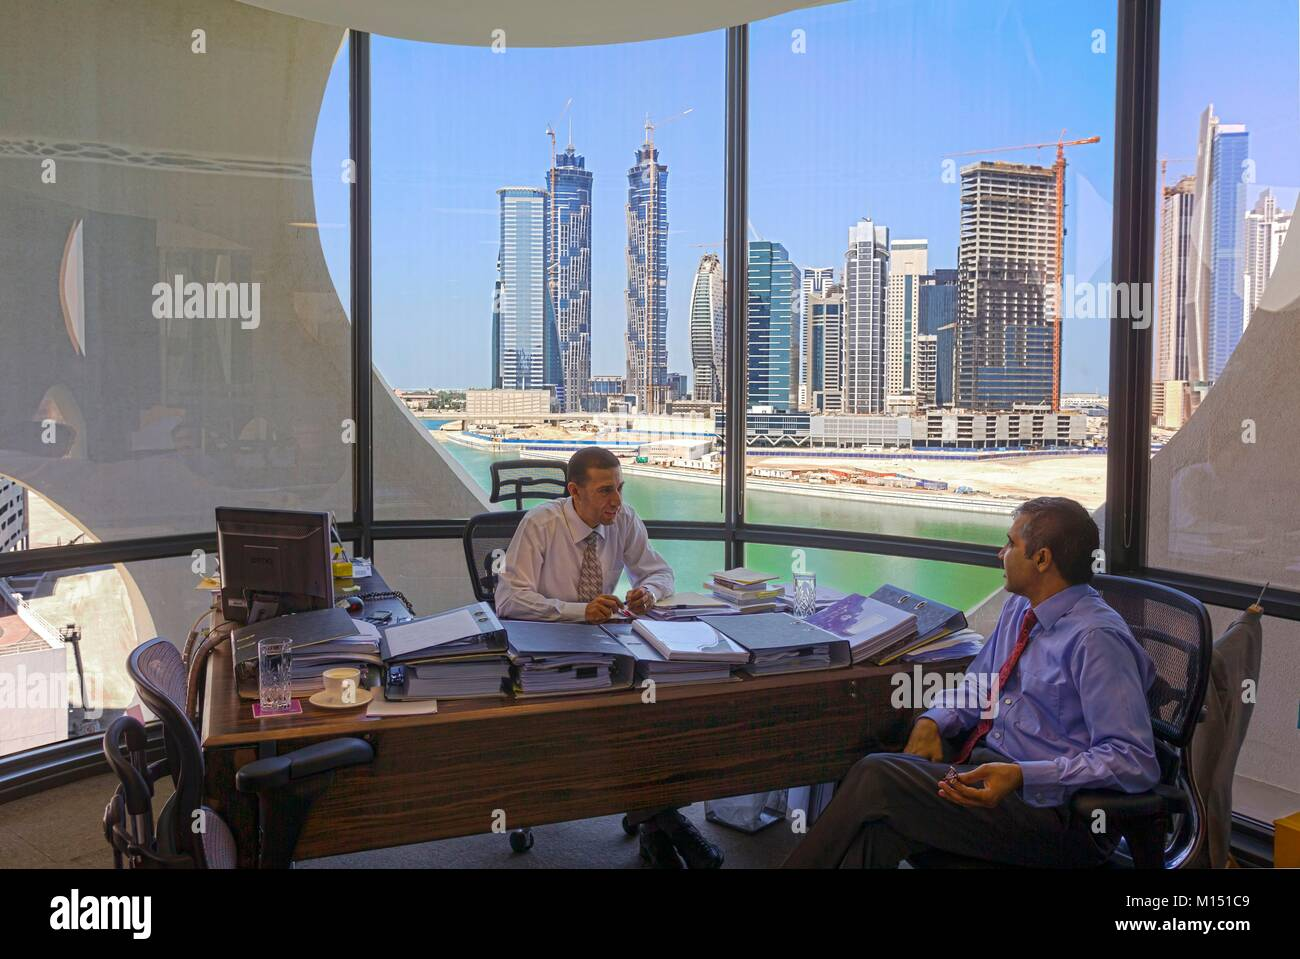 United Arab Emirates, Dubai, offices in 0-14 tower, the swiss tower, at Business Bay - Stock Image